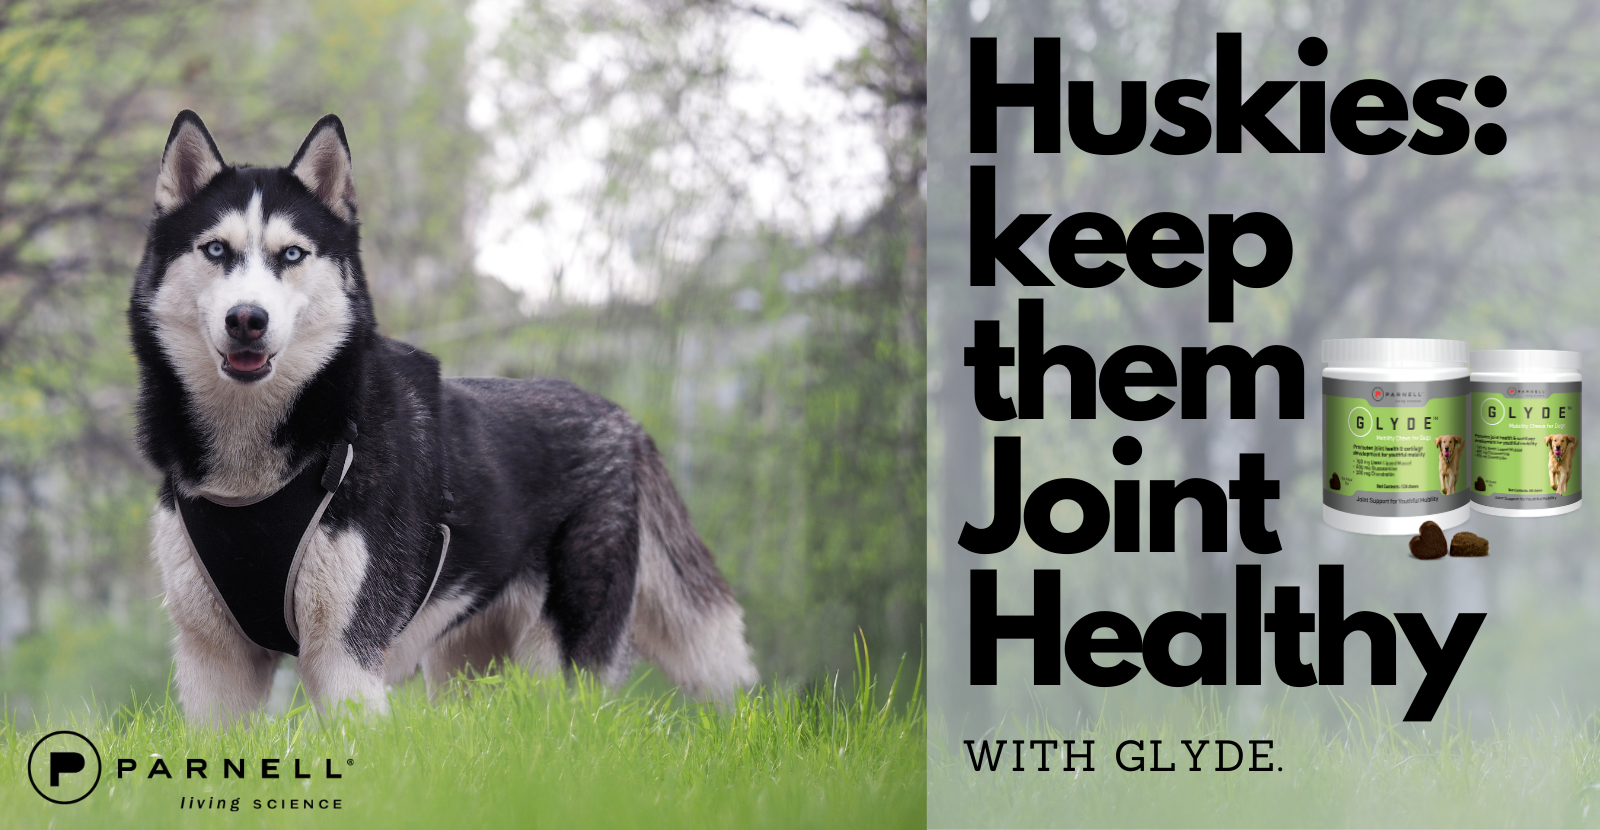 Joint Health is Key for Huskies